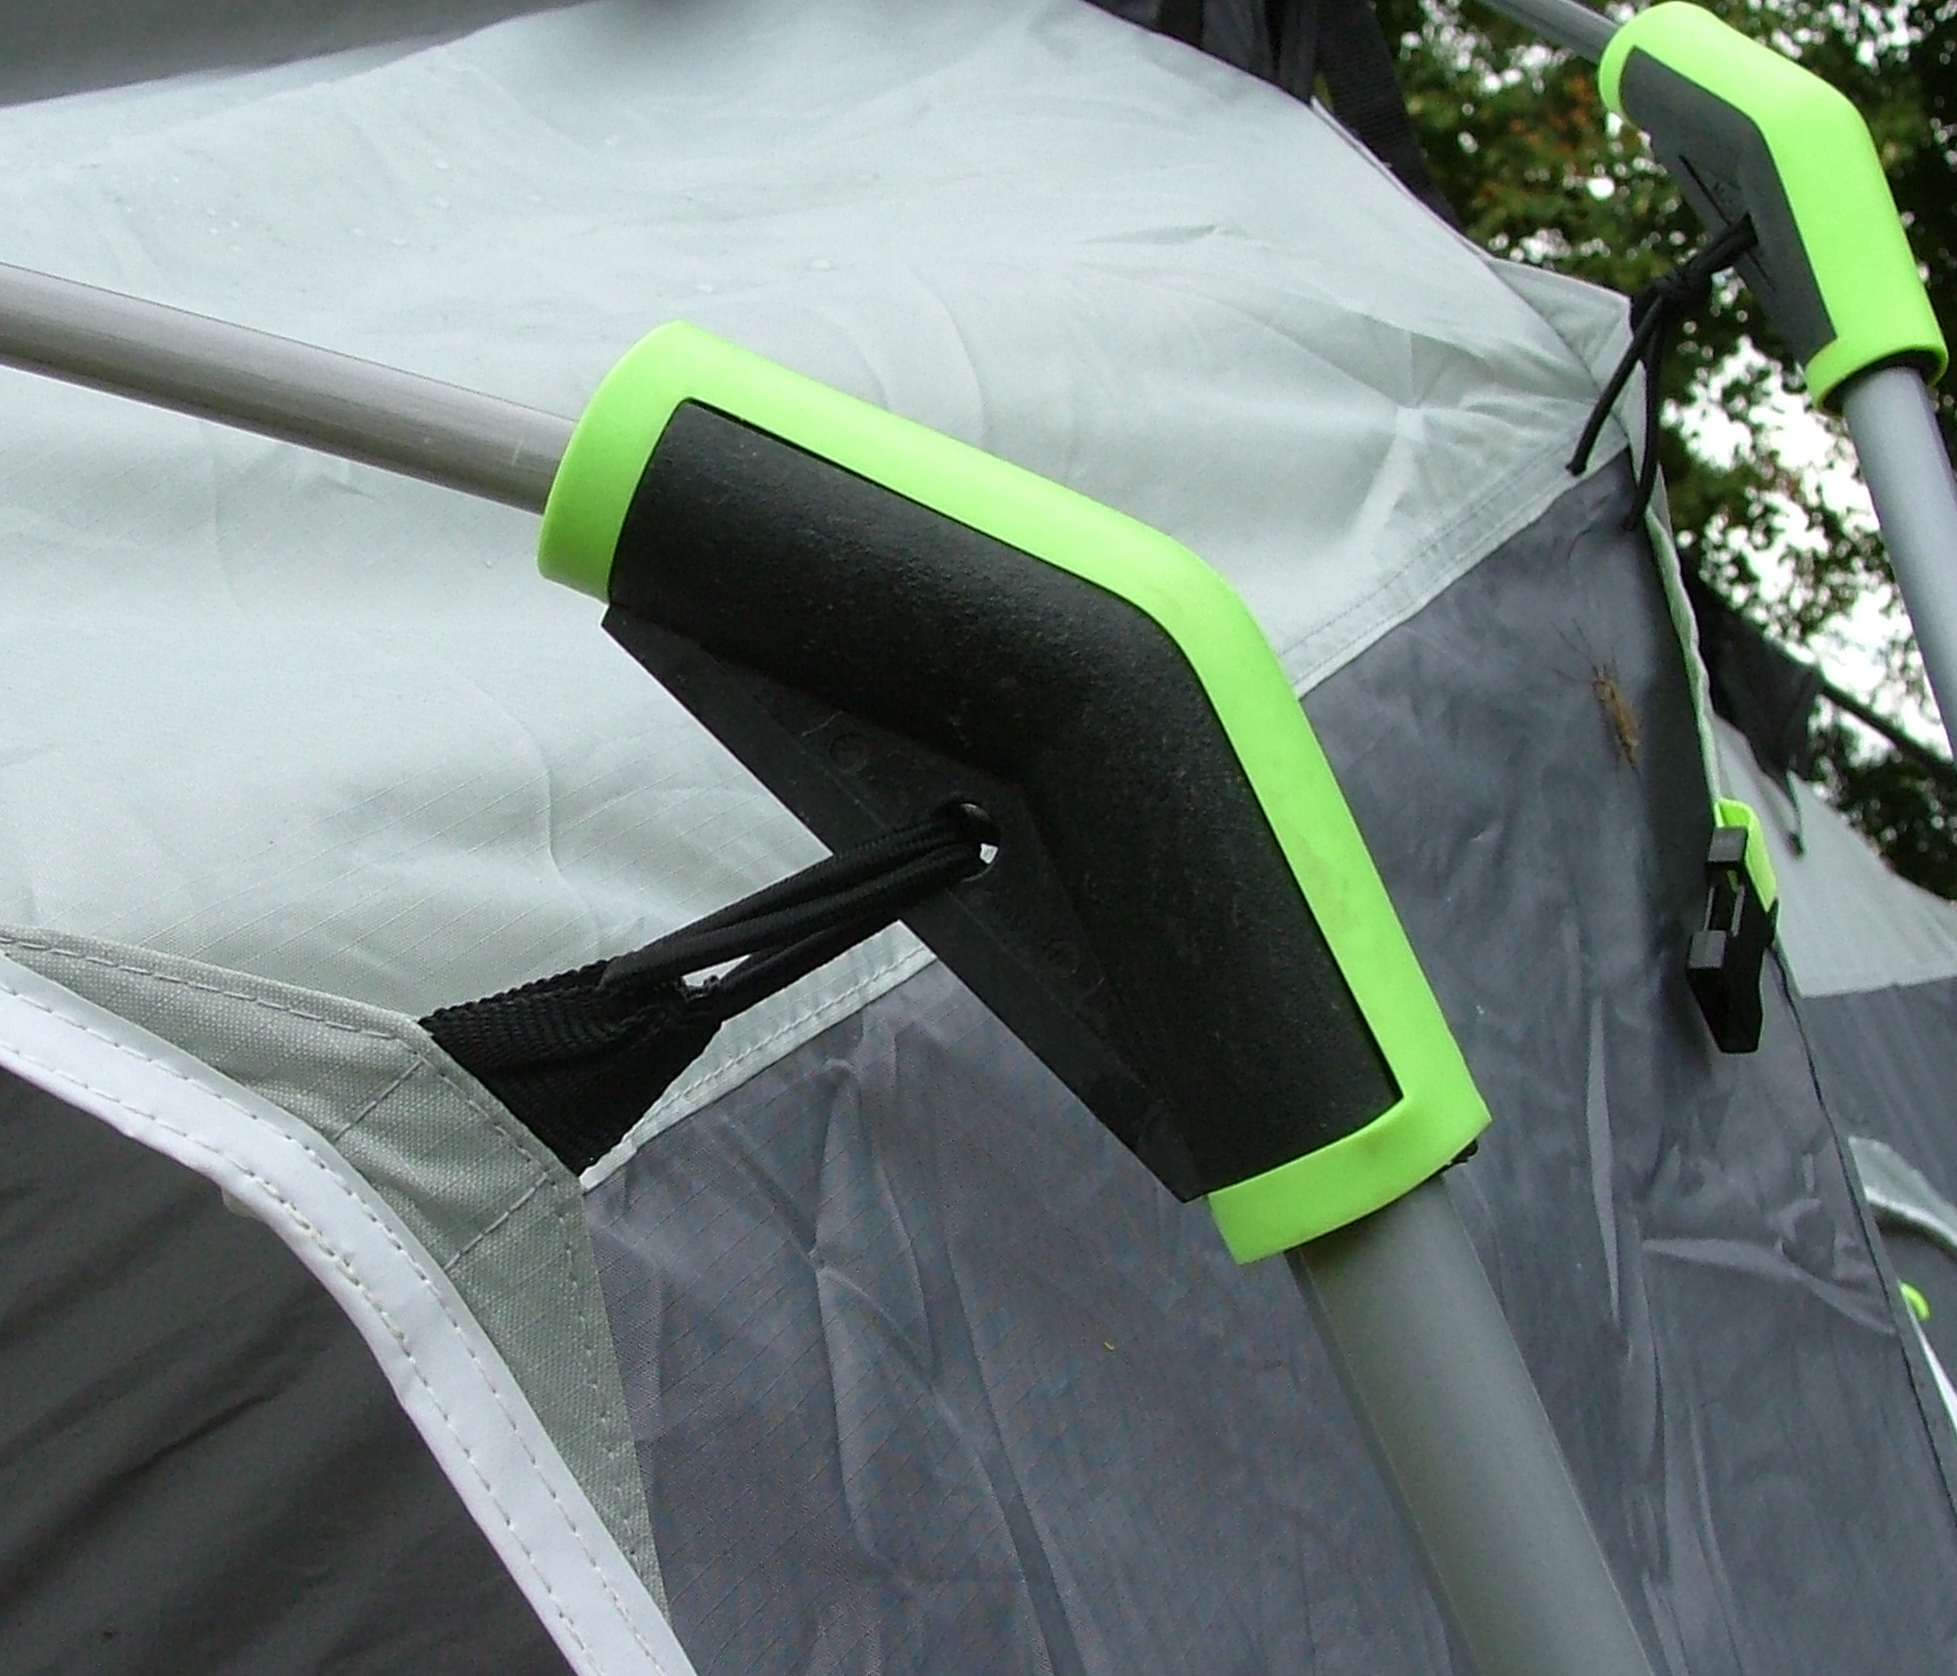 2014 Driveaway-awnings - driveaway-awnings.co.uk